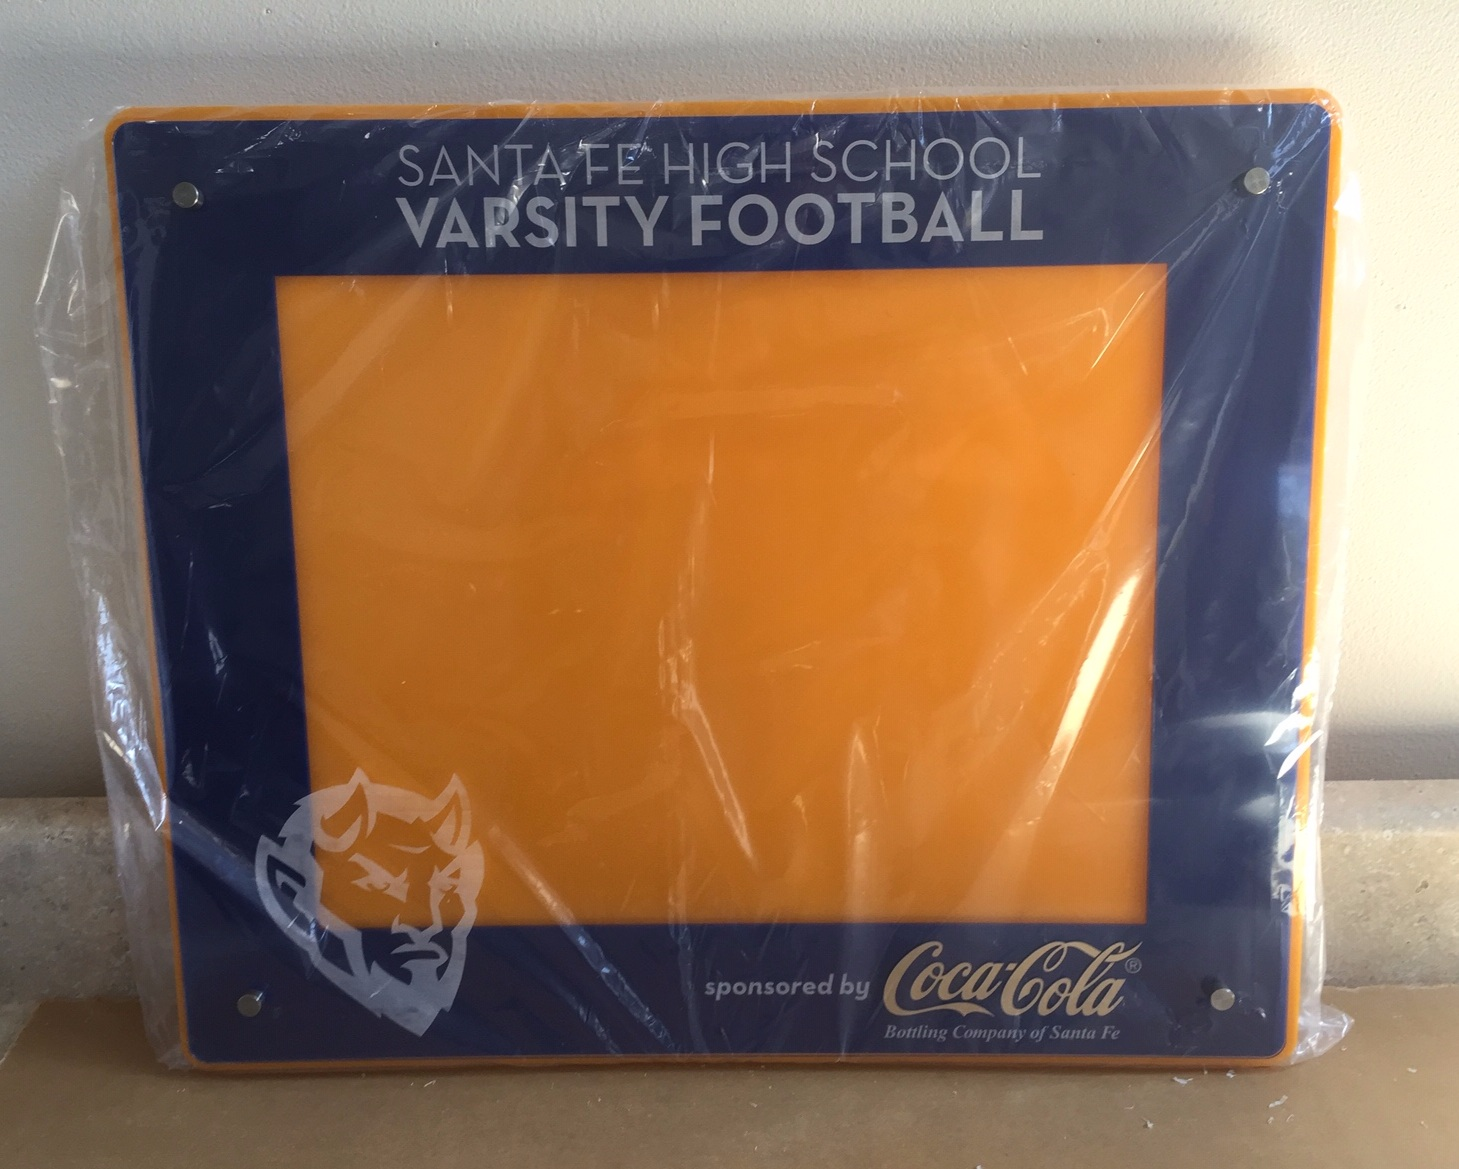 11x14 Sports Team landscape frame - 4-layer arylic, color enhanced school logo, custom etching with sponsor and school logos, team and school text identification.  Contact us for pricing information.